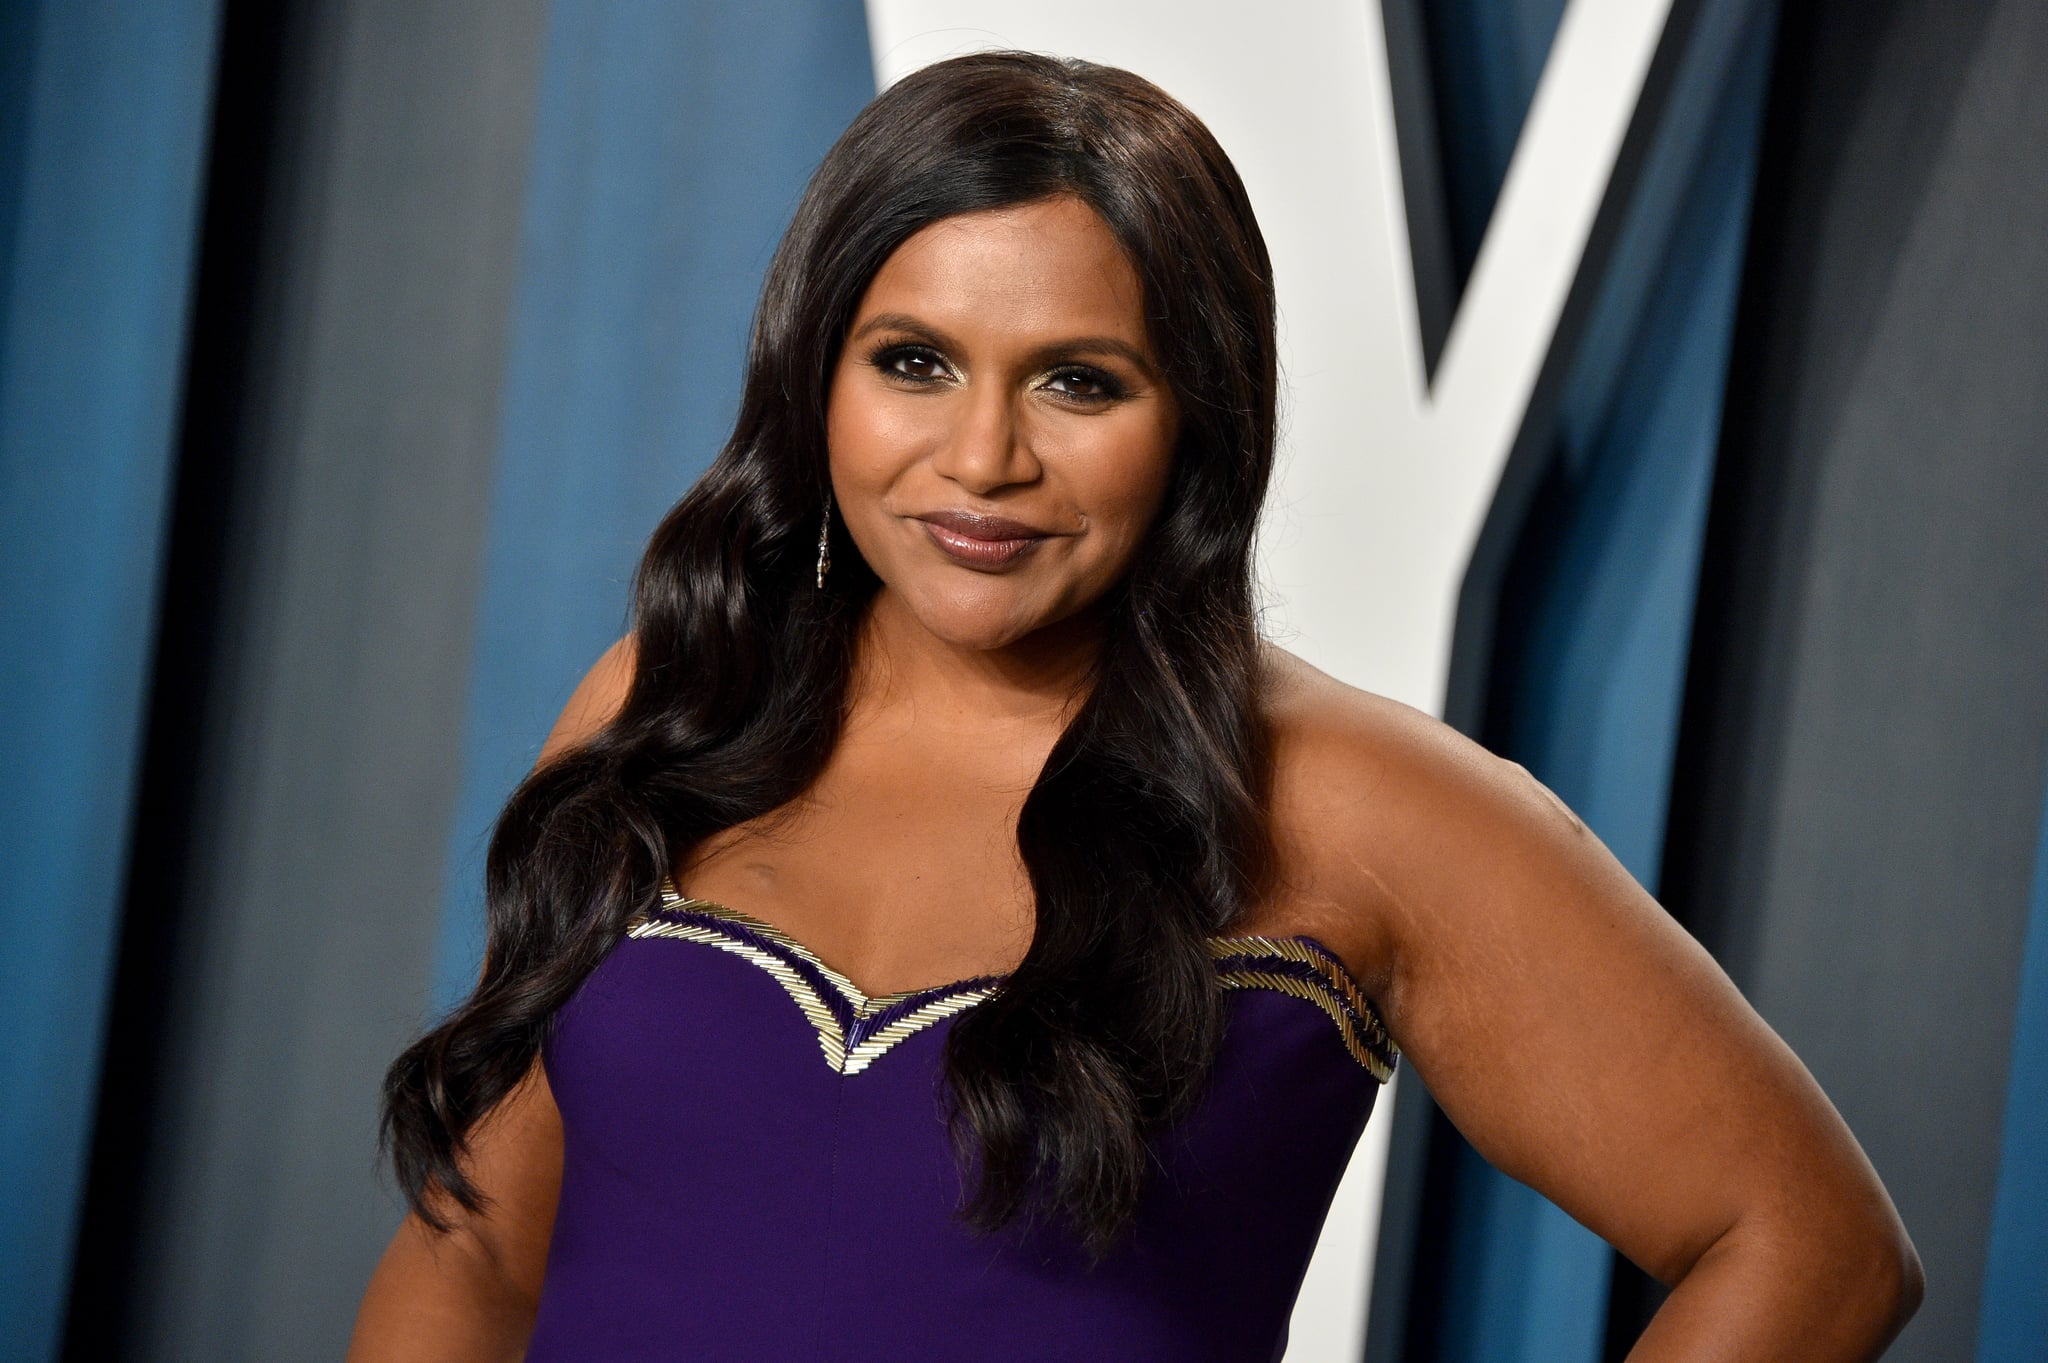 BEVERLY HILLS, CALIFORNIA - FEBRUARY 09: Mindy Kaling attends the 2020 Vanity Fair Oscar Party hosted by Radhika Jones at Wallis Annenberg Centre for the Performing Arts on February 09, 2020 in Beverly Hills, California. (Photo by Gregg DeGuire/FilmMagic)